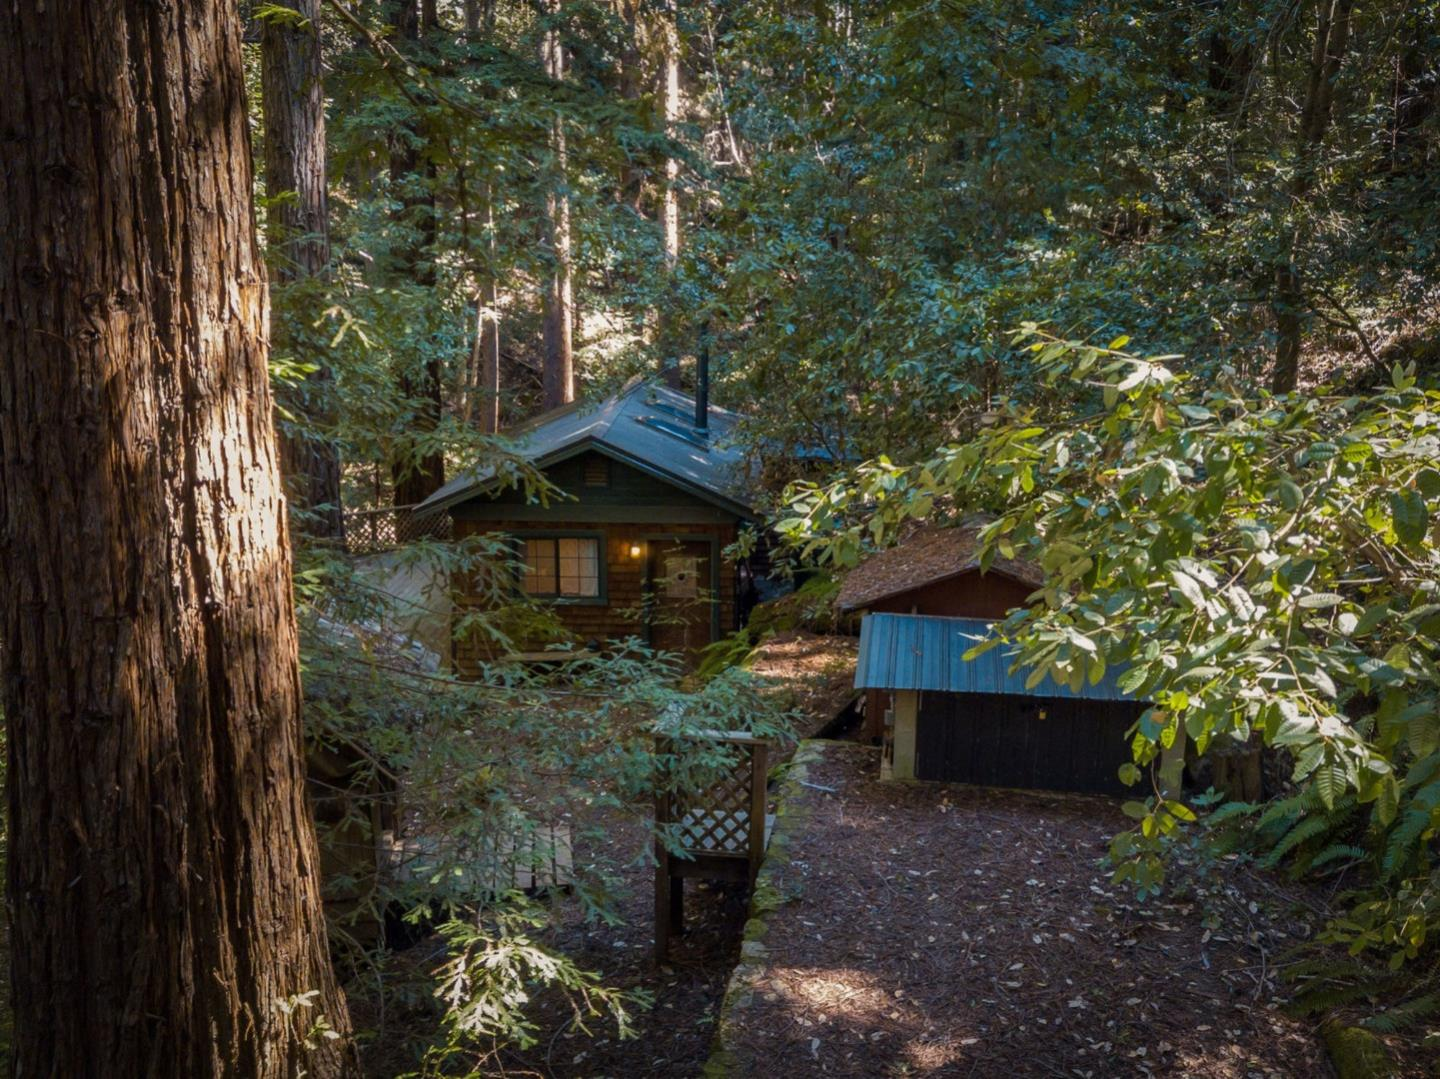 Burrowed deep in the redwood forest lies a sweet cabin retreat. Where the stars shine brighter, hear the owls hoot louder and the sounds of the rushing creek just off of your large private deck. Connect with nature and decompress from your daily life in both a quiet and relaxing environment. This secluded and completely self contained cabin is the quintessential weekend 'get away' from civilization and the perfect hideaway to recharge. On demand hot water, propane stove, solar power and beautiful Magee wood burning stove to keep you toasty. Metal roof, insulated floors and ceiling plus some dual pane windows. 4WD not required but recommended, 2001 Toyota 4Runner included with property for your convenience. Hit some of the areas best surf spots such as 4 Mile Beach, Ano Nuevo and Scotts Creek. Just minutes away from kite surfing, kayaking and hikes! Don't forget to visit the Elephant Seals at Ano Nuevo and nearby Whale City Bakery in the heart of Davenport.